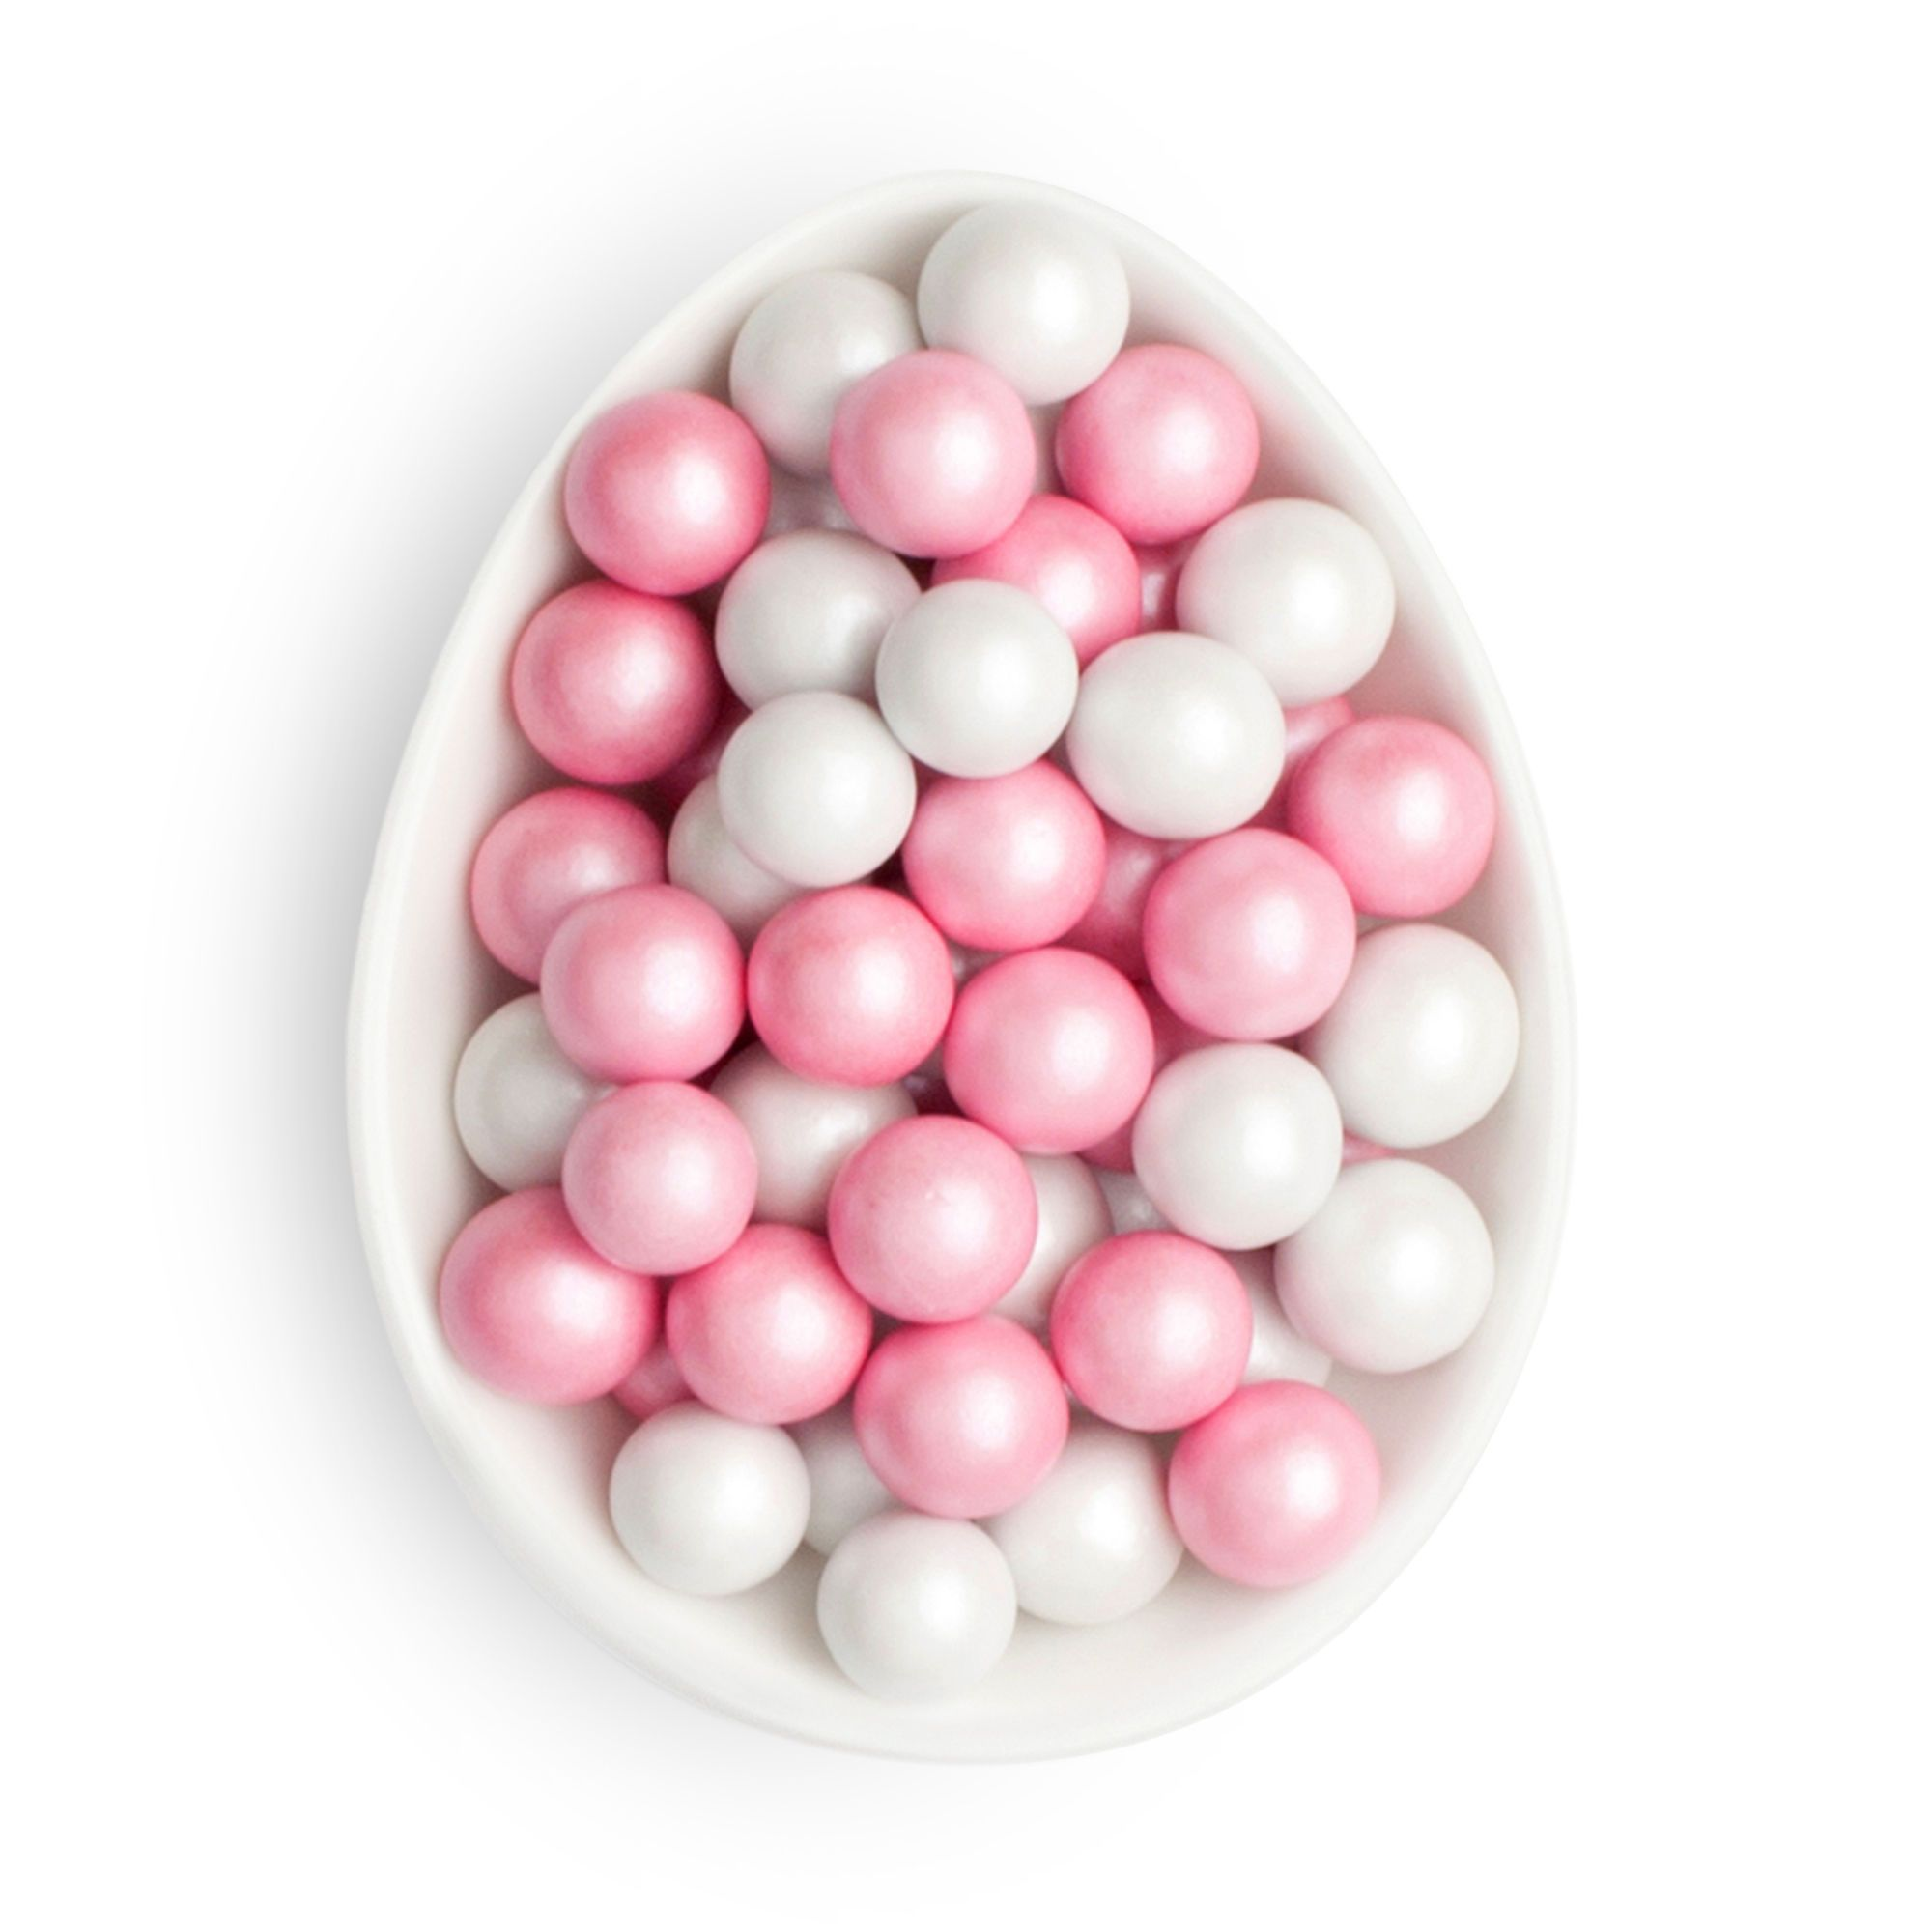 Pearls (Pink & White) | Shower favors, Candies and Chocolate